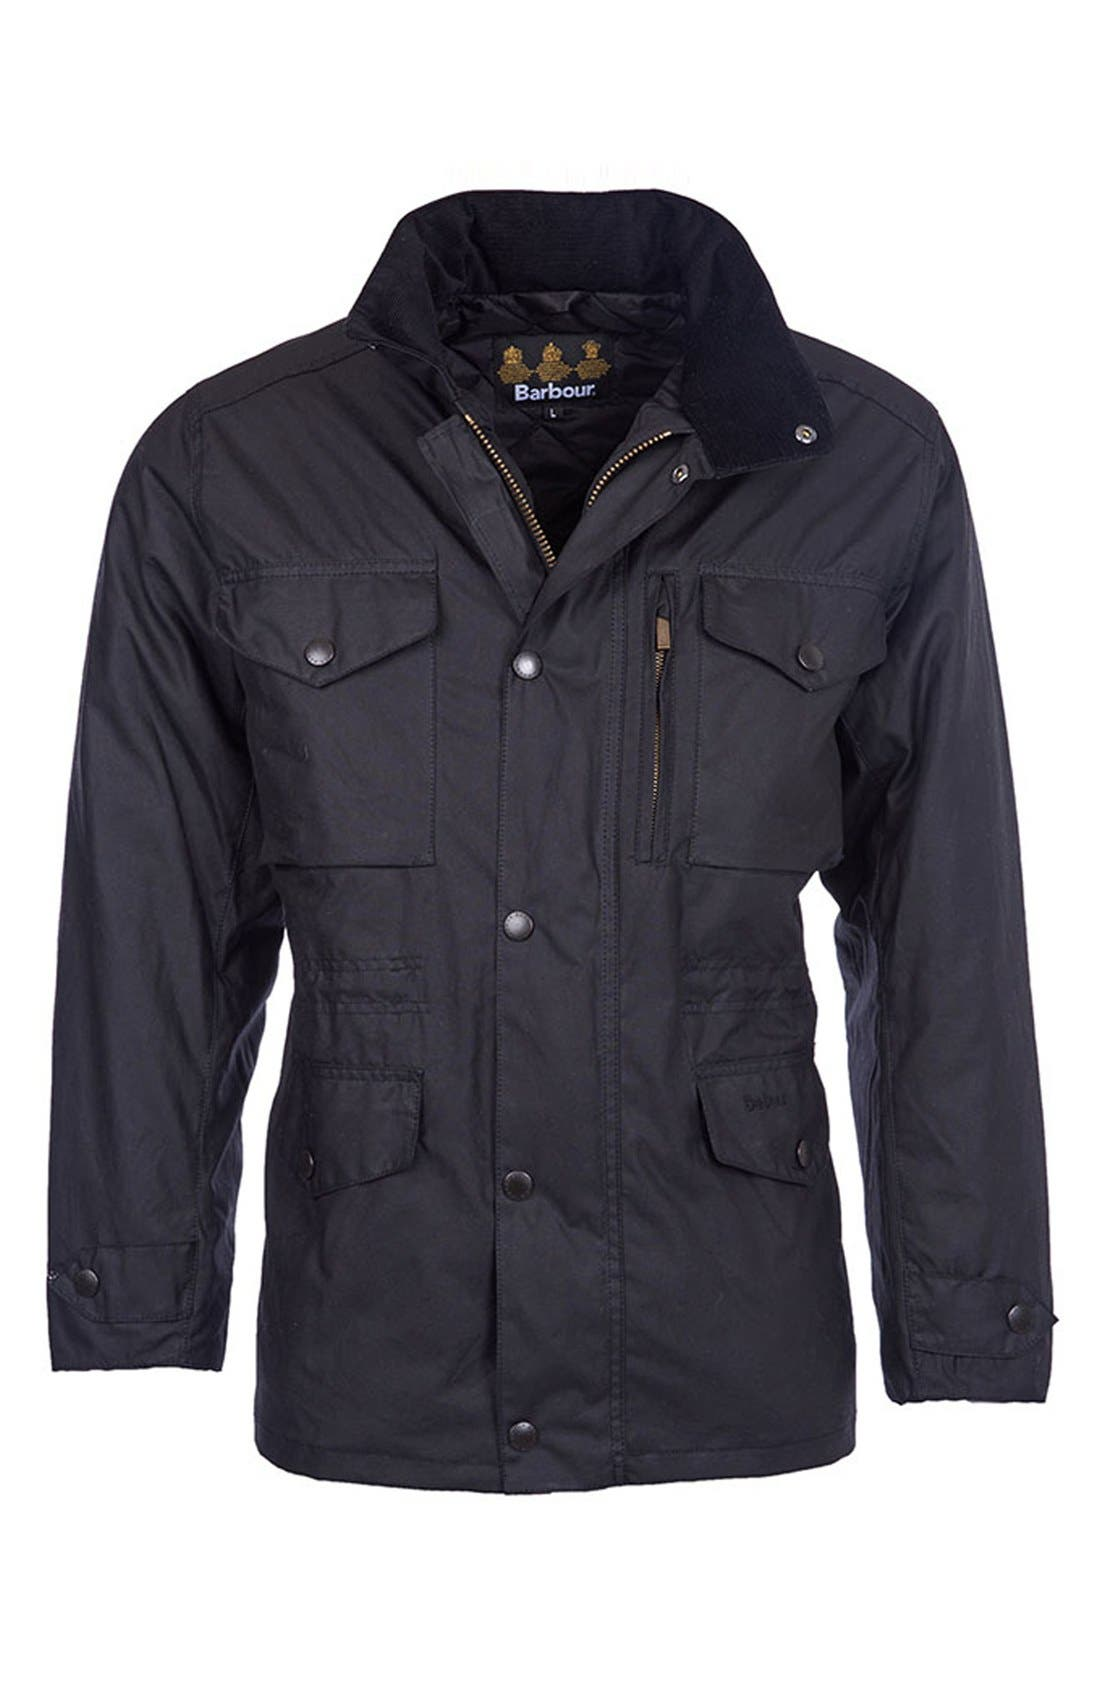 'Sapper' Weatherproof Waxed Relaxed Fit Jacket,                             Alternate thumbnail 2, color,                             001